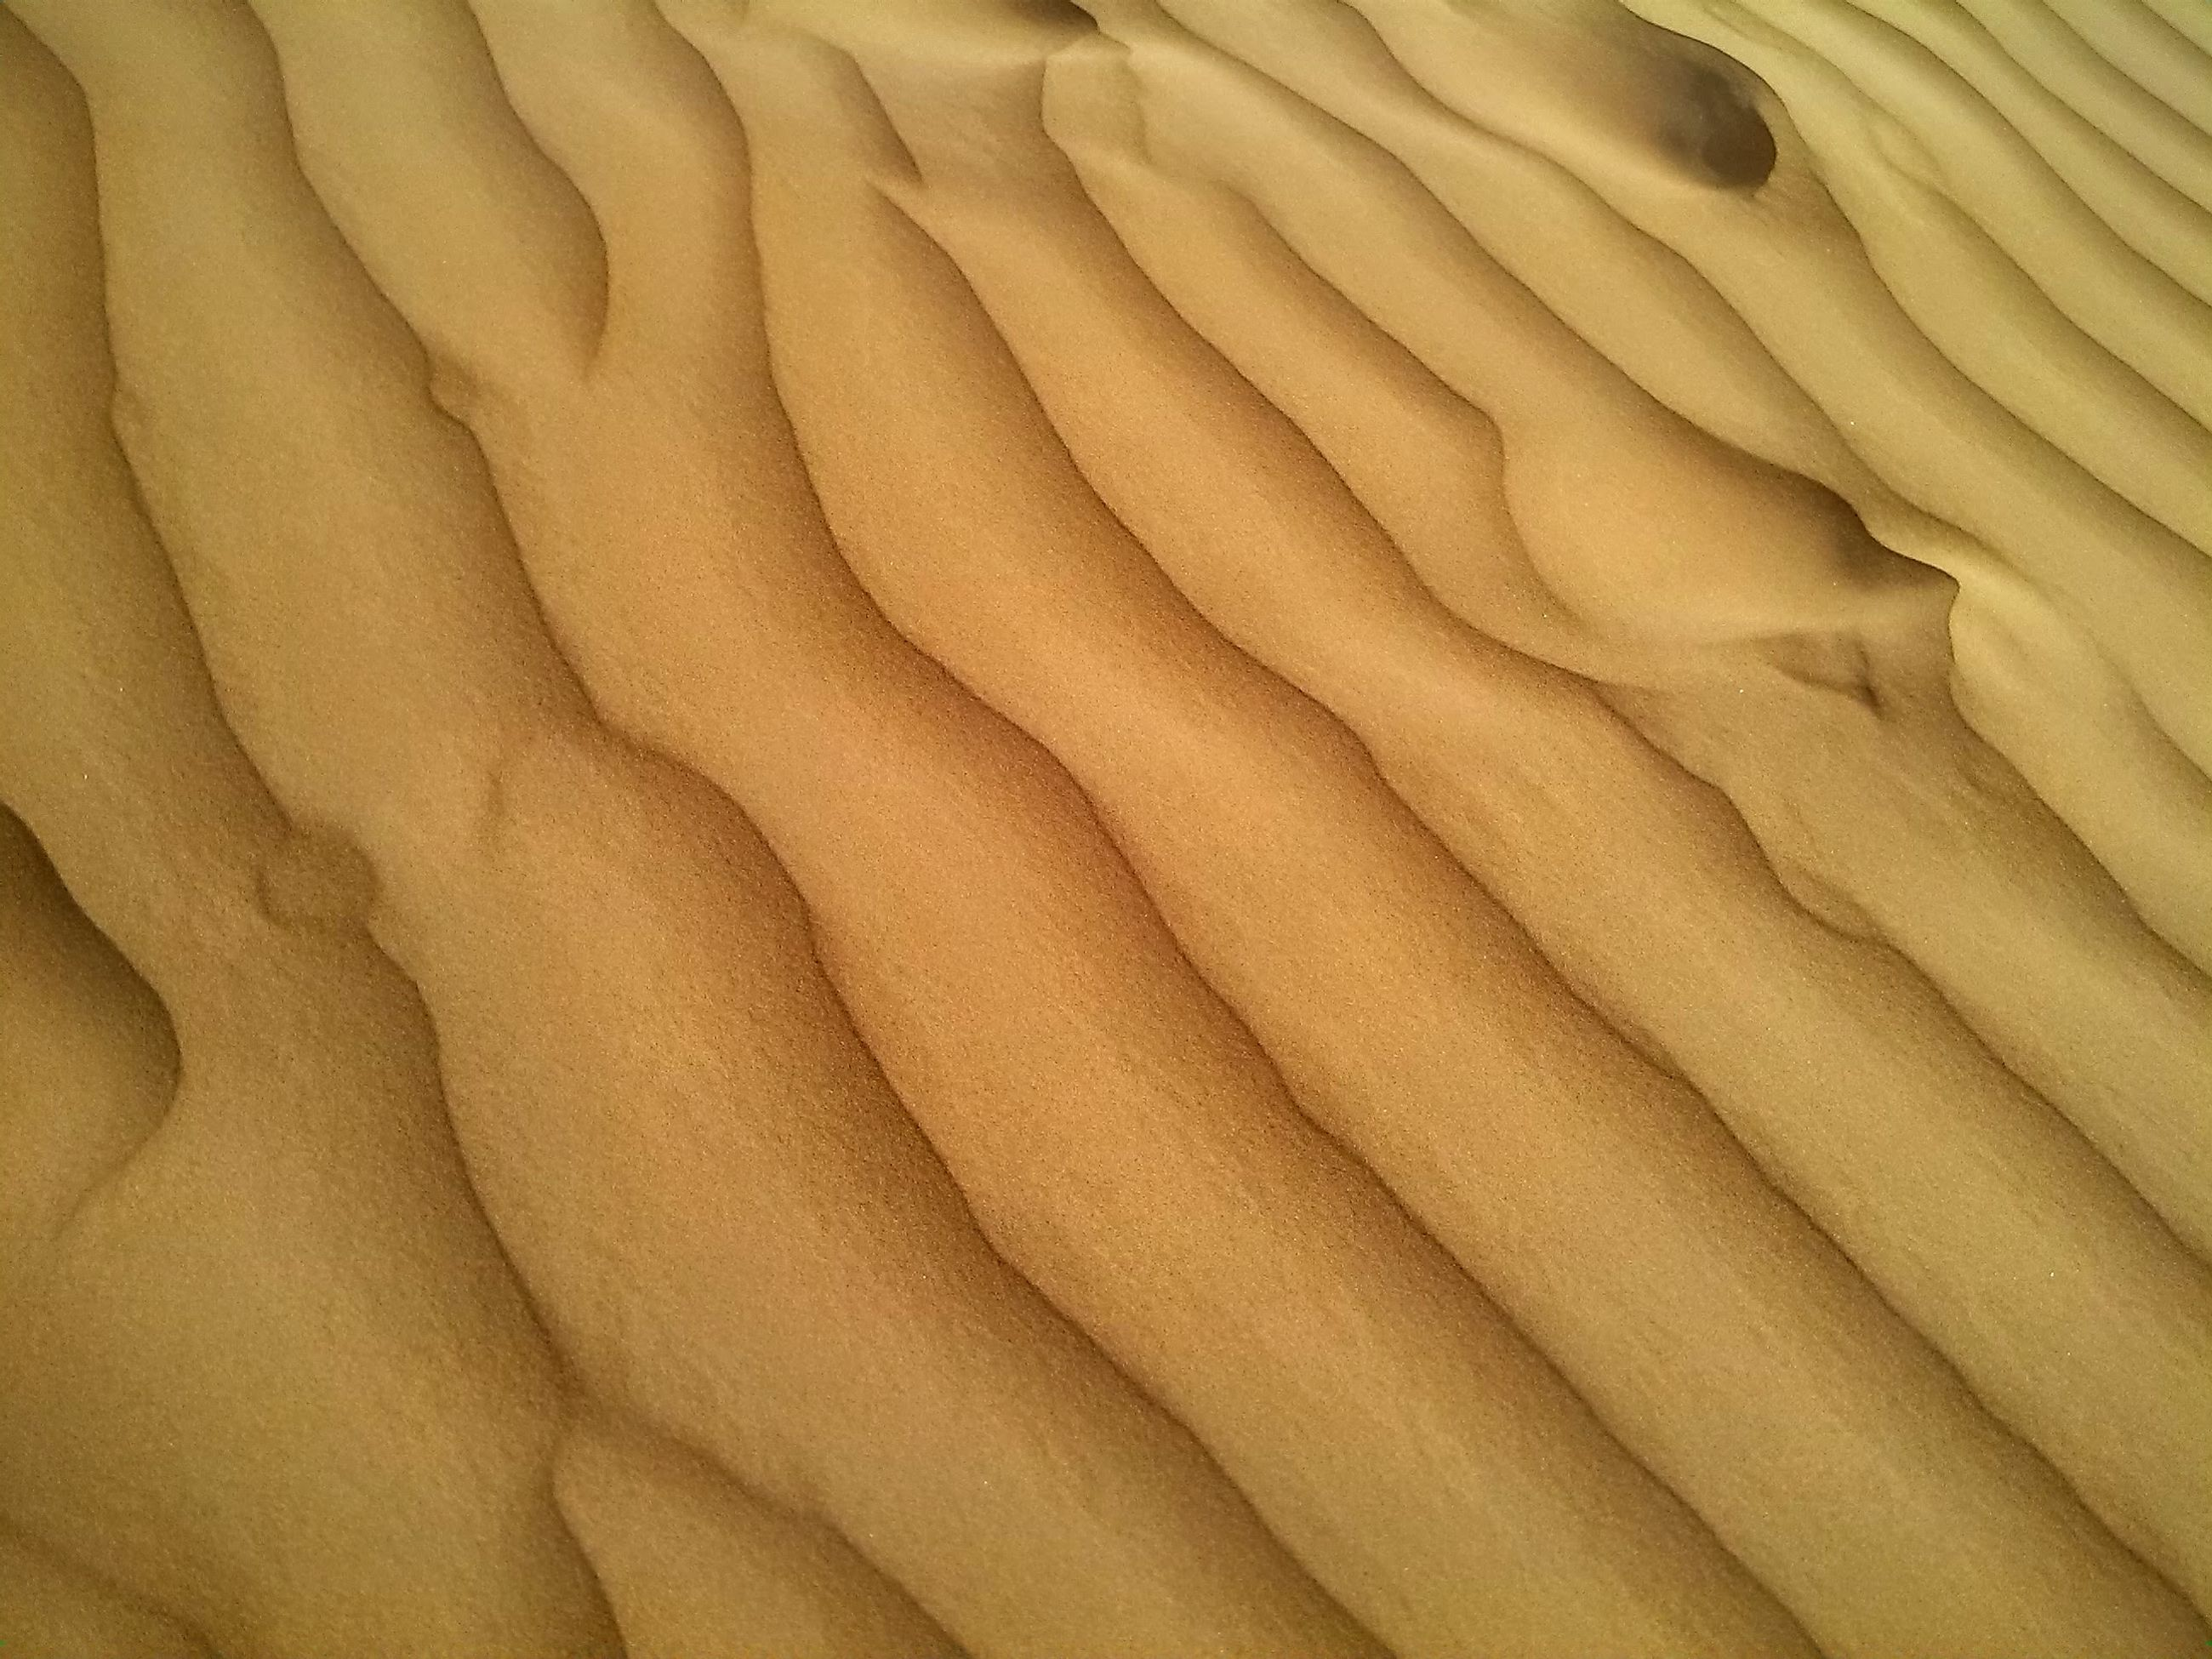 full frame, backgrounds, textured, pattern, natural pattern, sand, nature, brown, tranquility, close-up, rough, high angle view, beauty in nature, no people, beach, day, wave pattern, outdoors, detail, arid climate